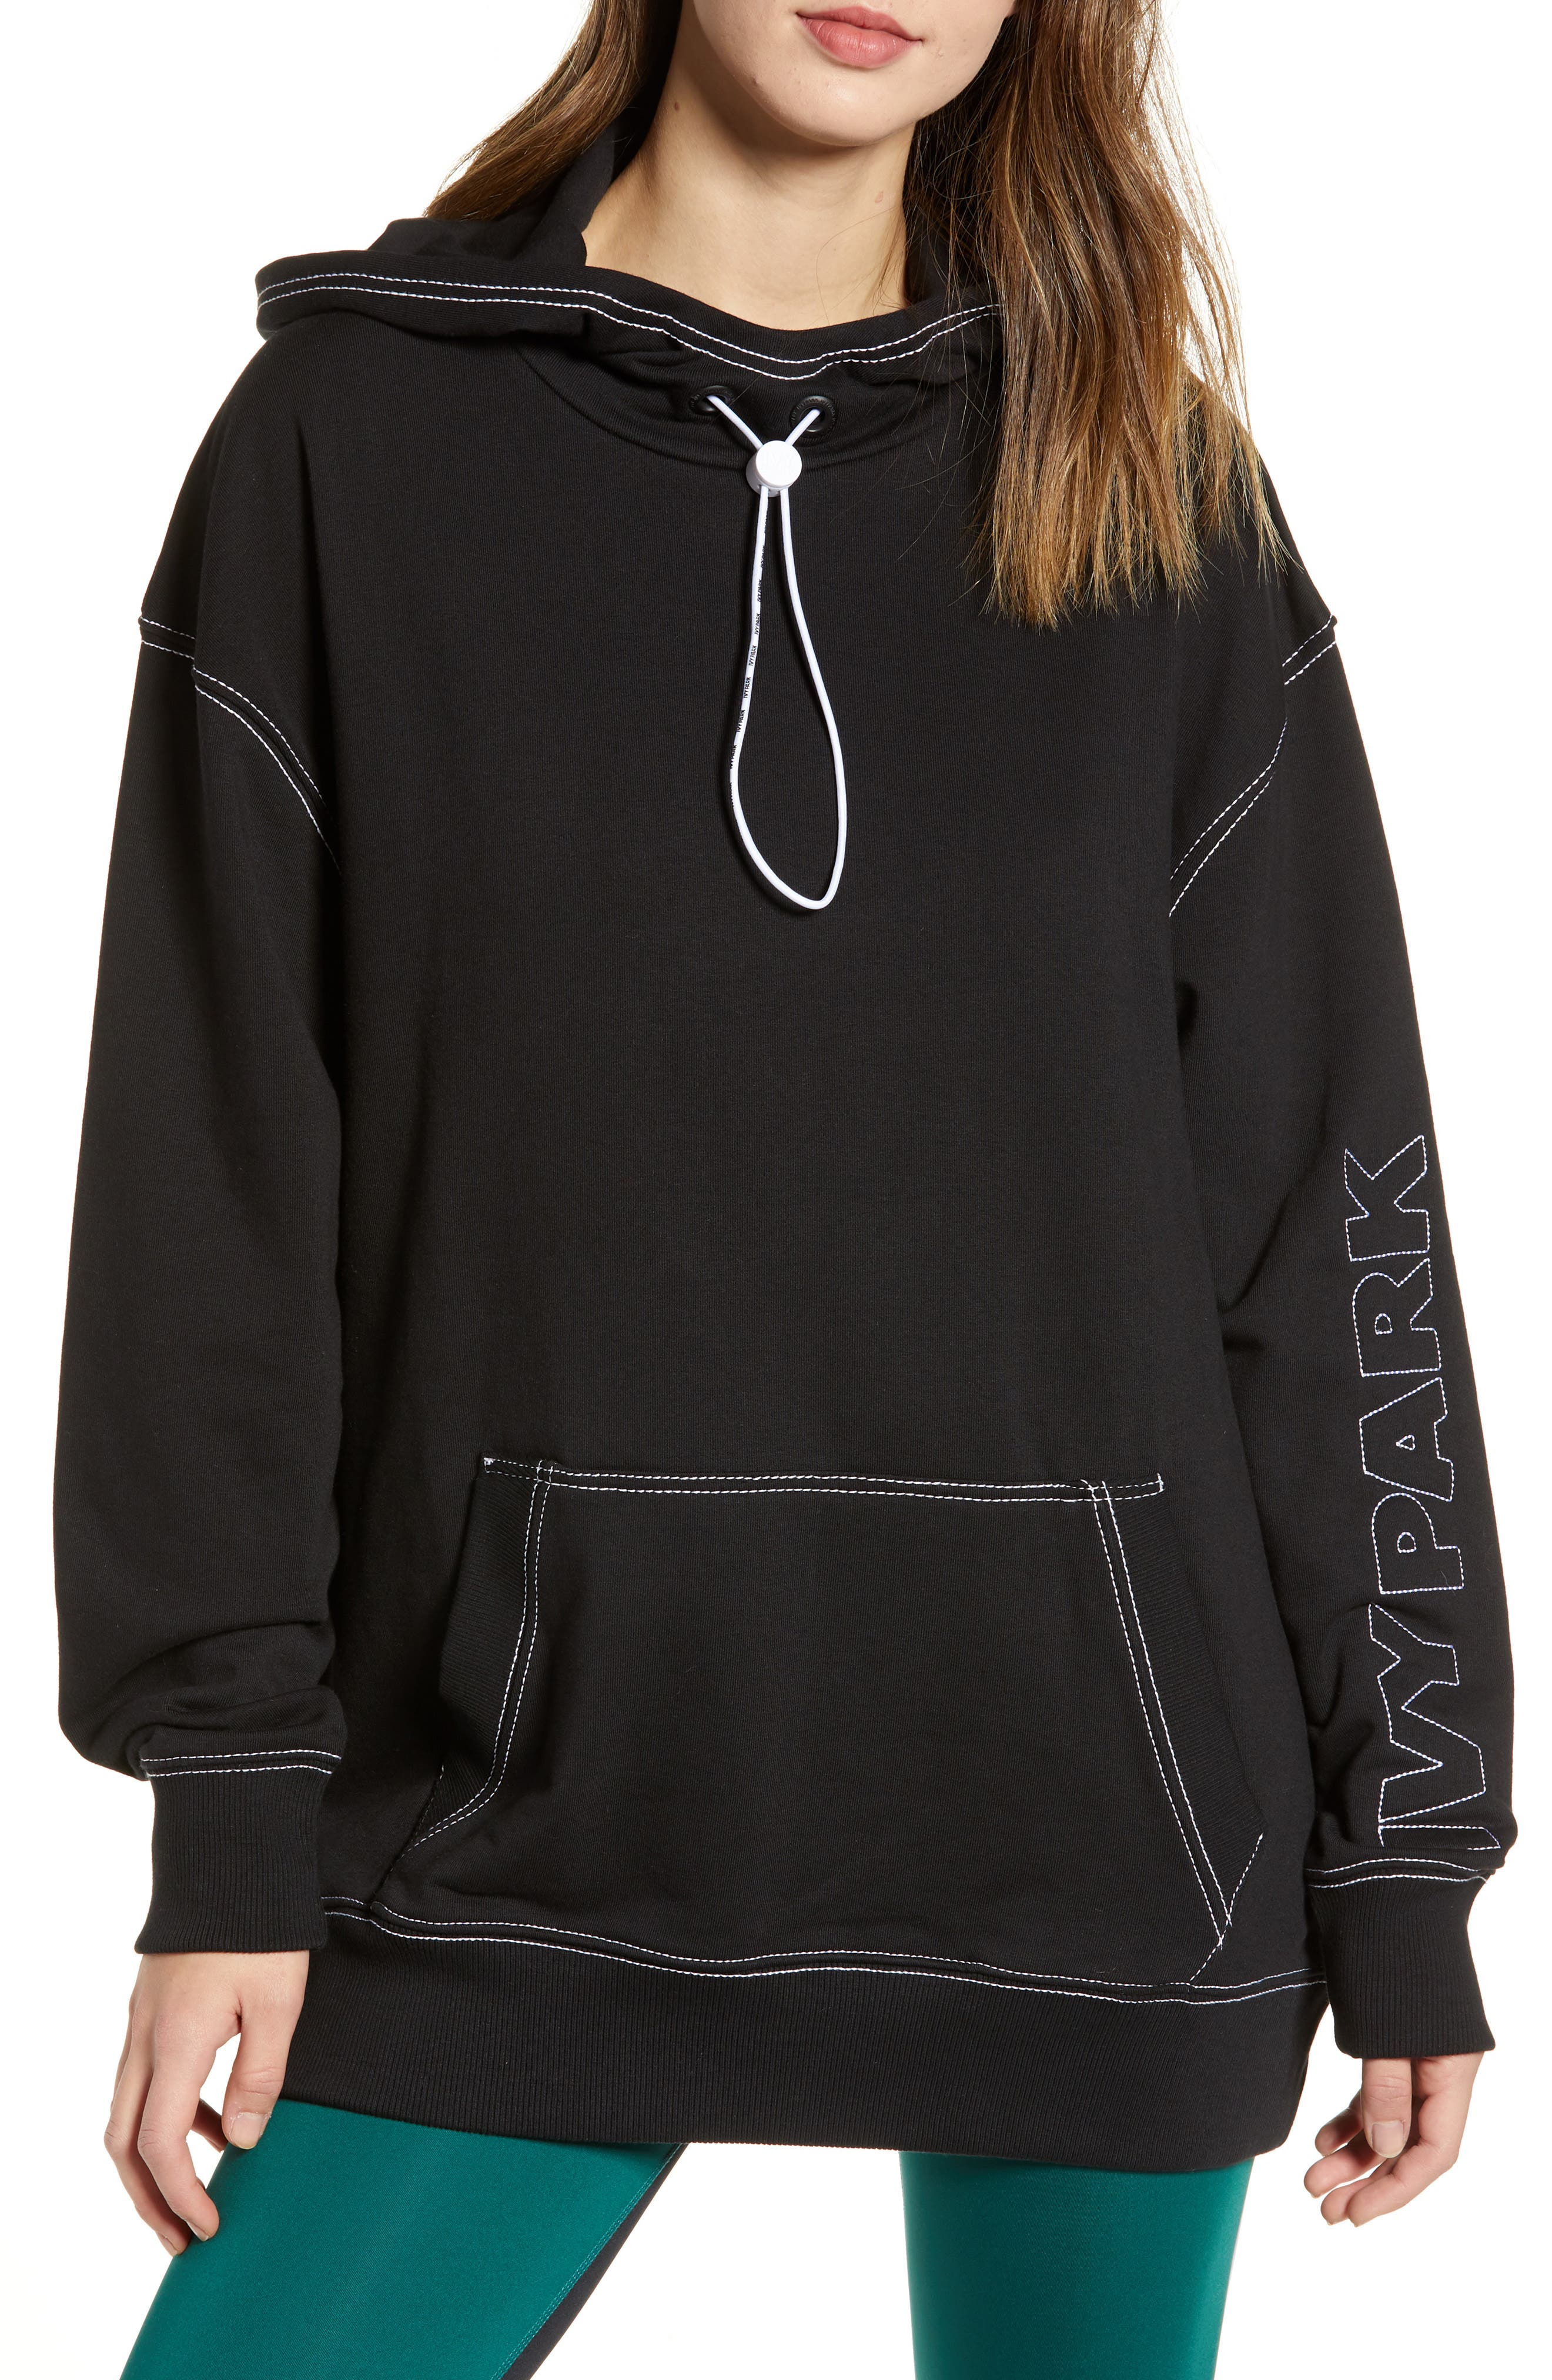 IVY PARK<SUP>®</SUP>, Stab Stitch Hoodie, Main thumbnail 1, color, 002